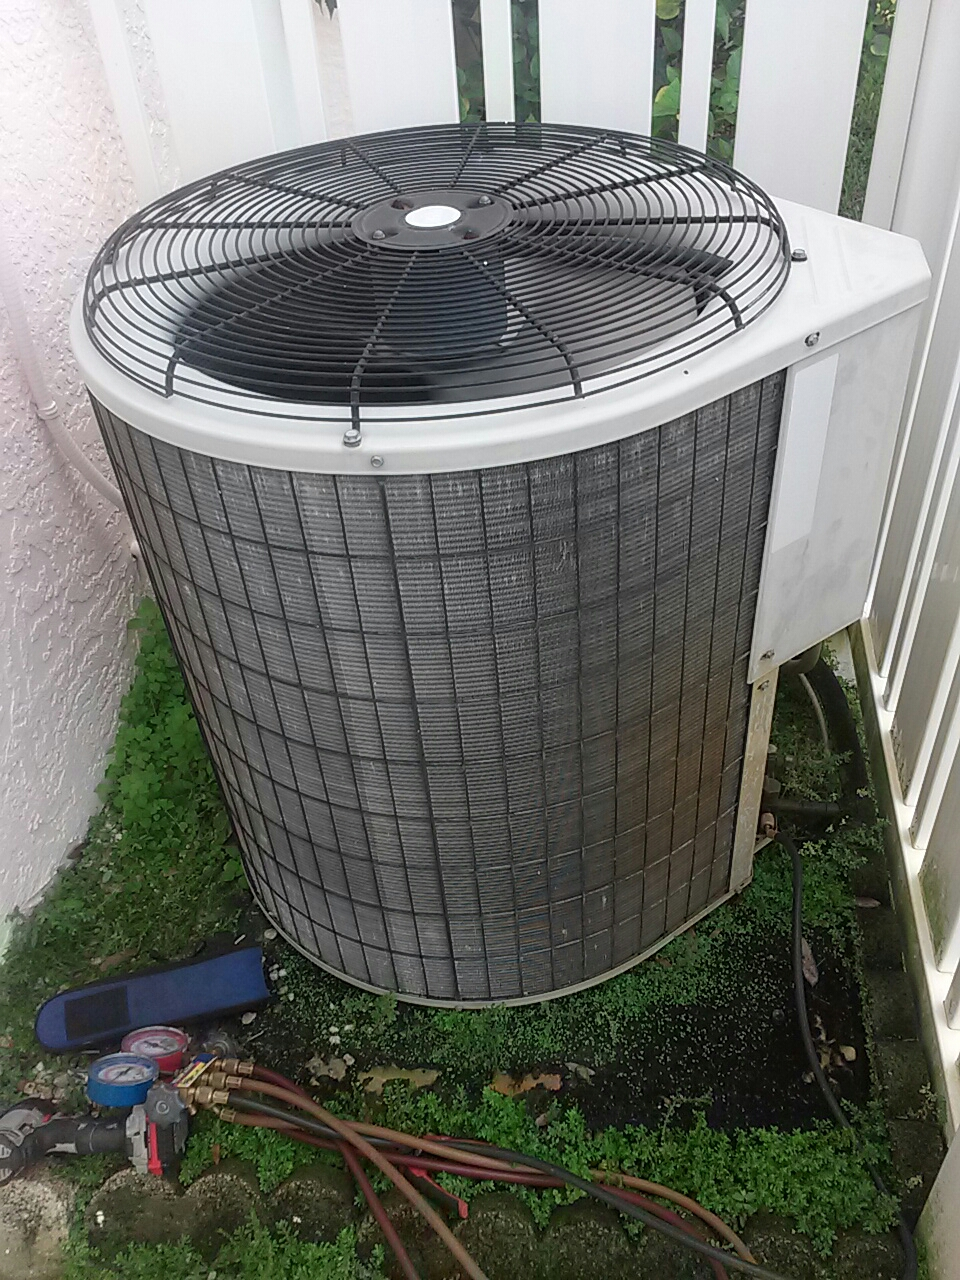 Malabar, FL - Perform bi-annual preventative maintenance on a Payne air conditioning system.